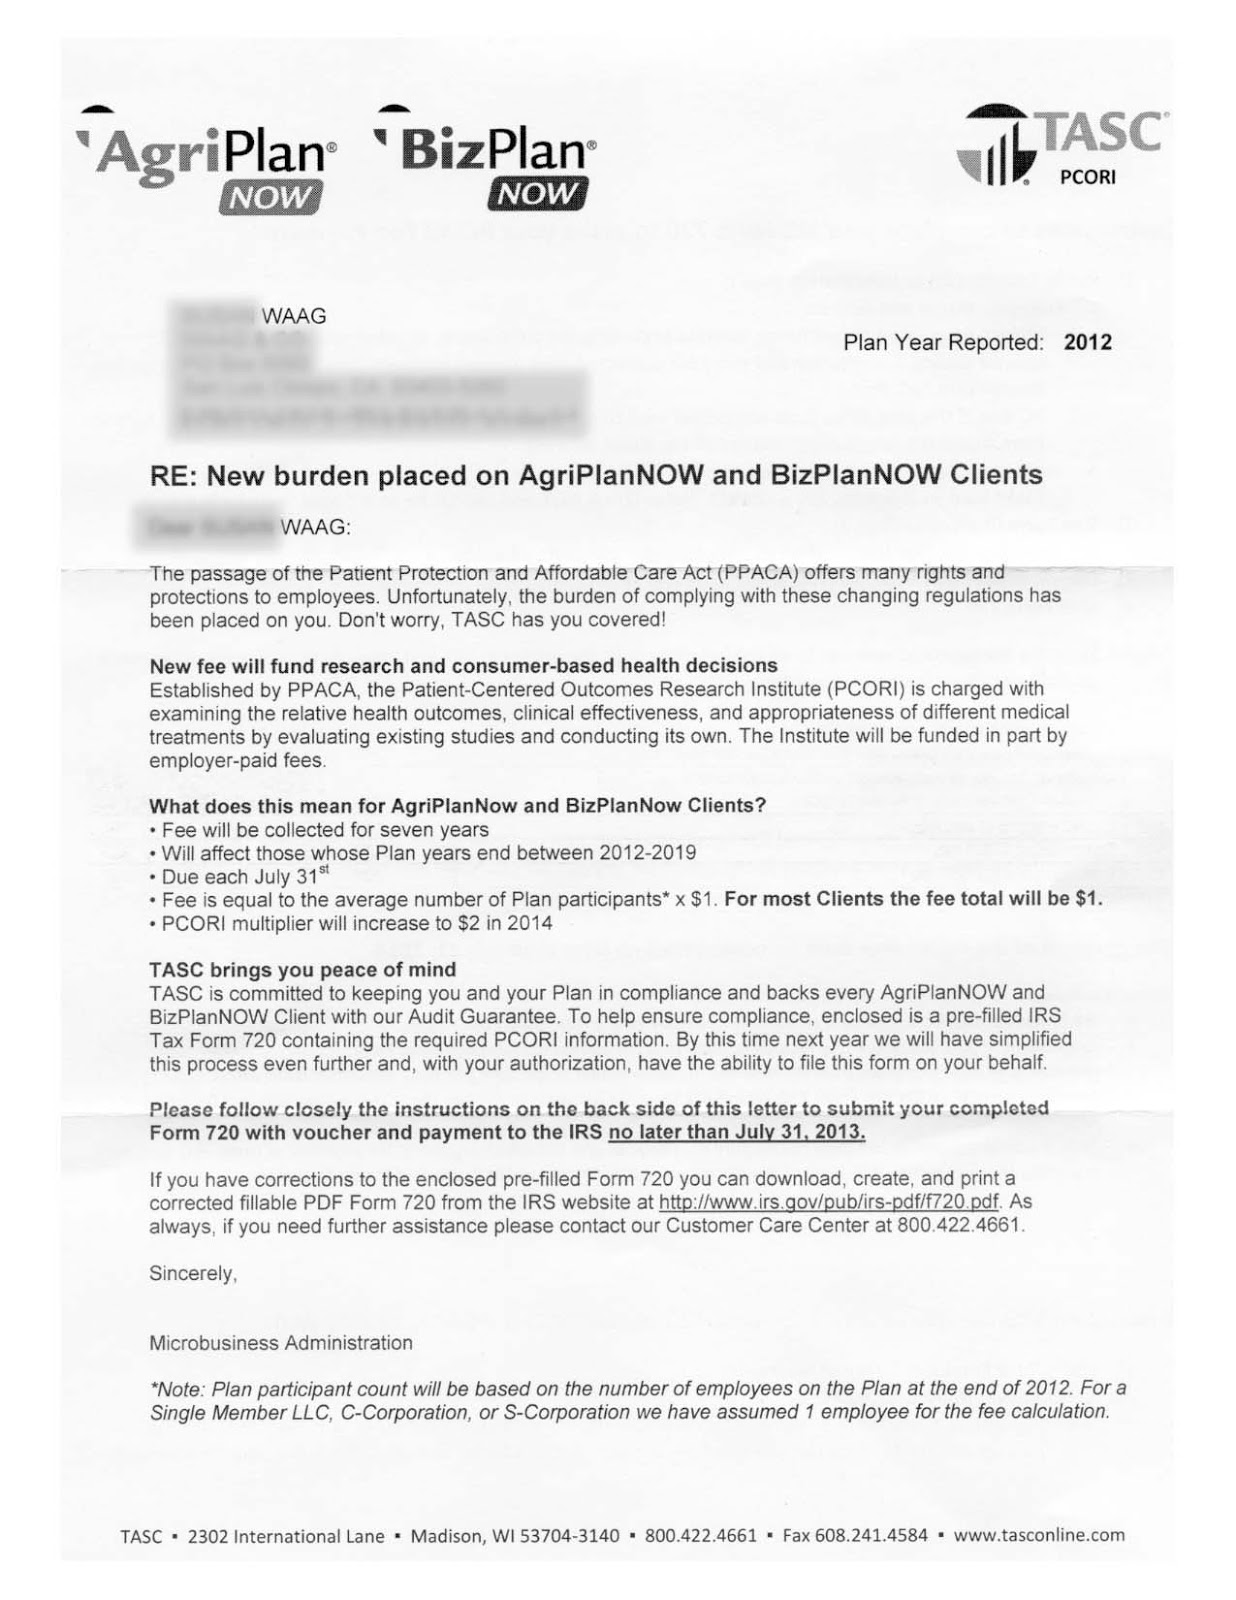 Irs form for new employees gallery standard form examples timwaagblog obamacare part i obamacare is coming 112014 get read letter from section 105 plan administrator falaconquin